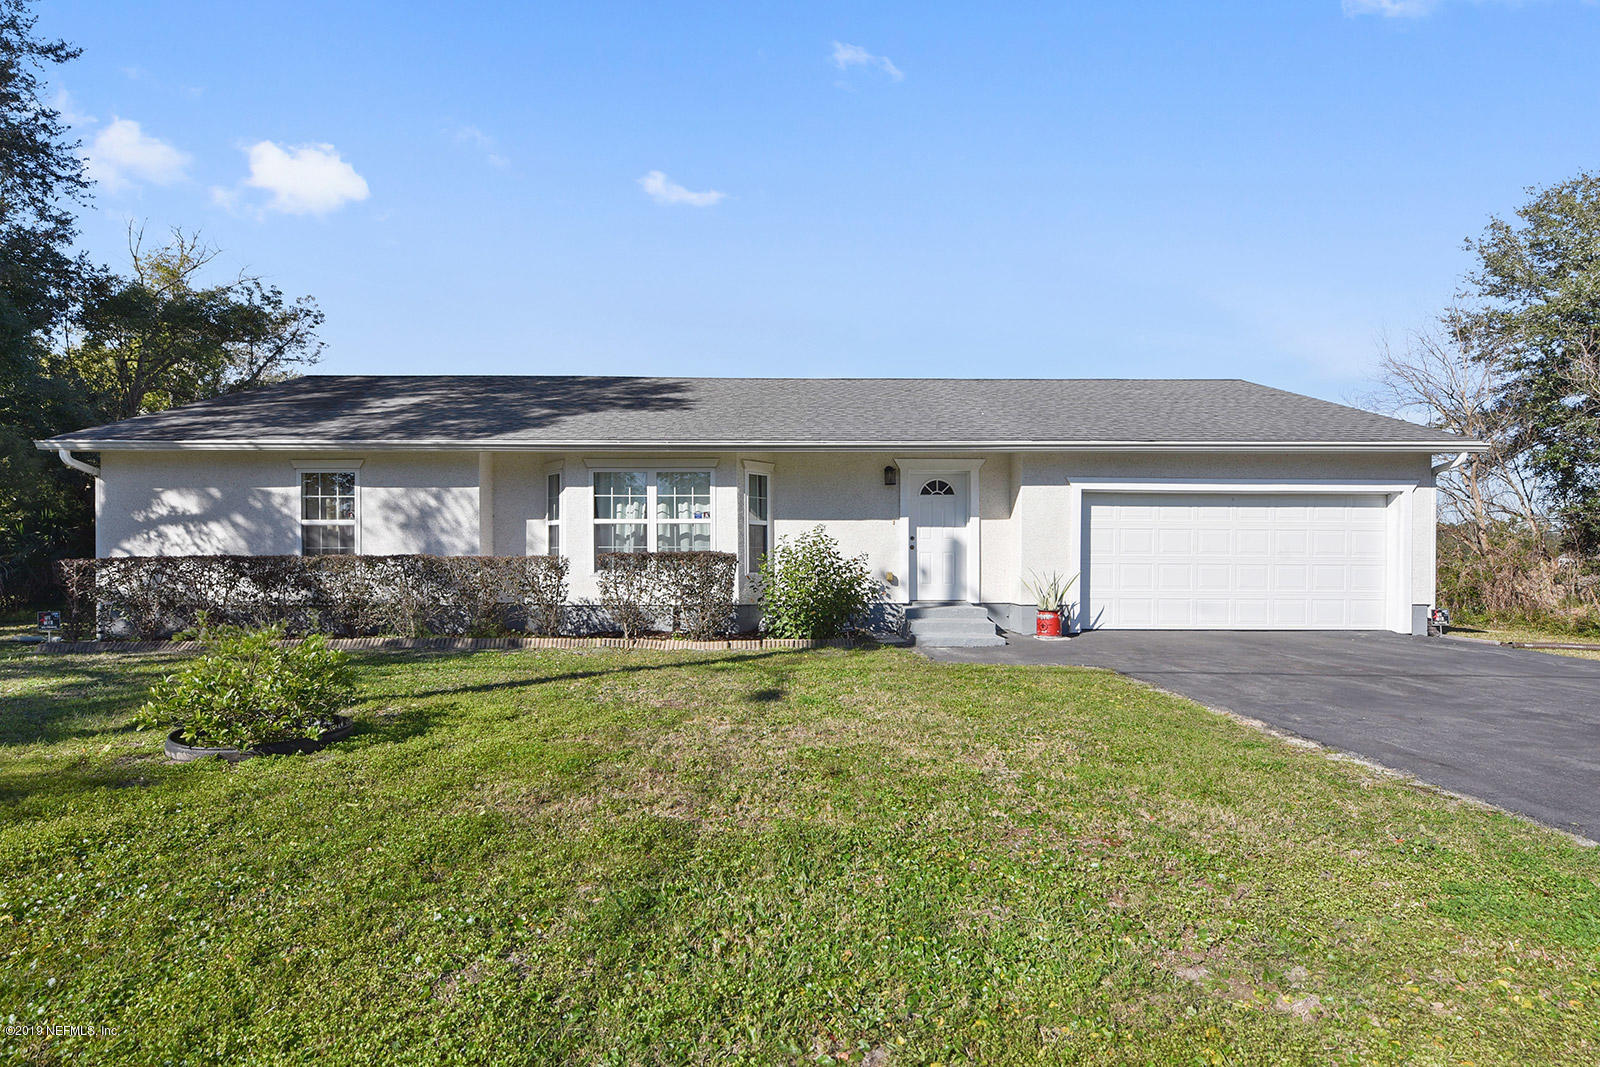 8212 CONCORD, JACKSONVILLE, FLORIDA 32208, 3 Bedrooms Bedrooms, ,2 BathroomsBathrooms,Residential - single family,For sale,CONCORD,975359